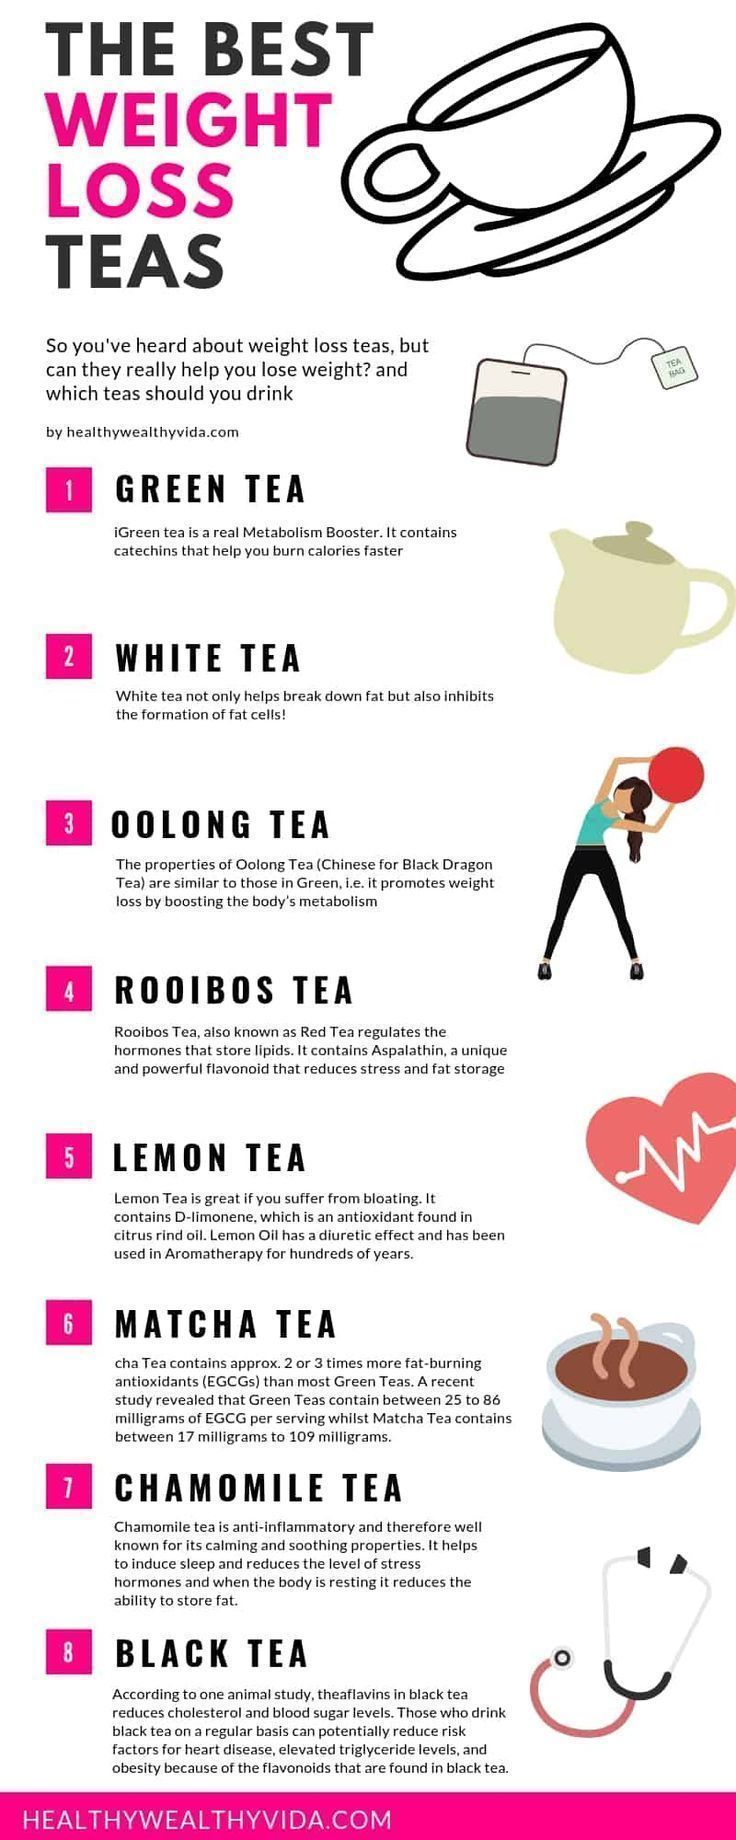 Photo of 8 Of The Best Weight Loss Teas For Losing Weight – Healthy Wealthy Vida